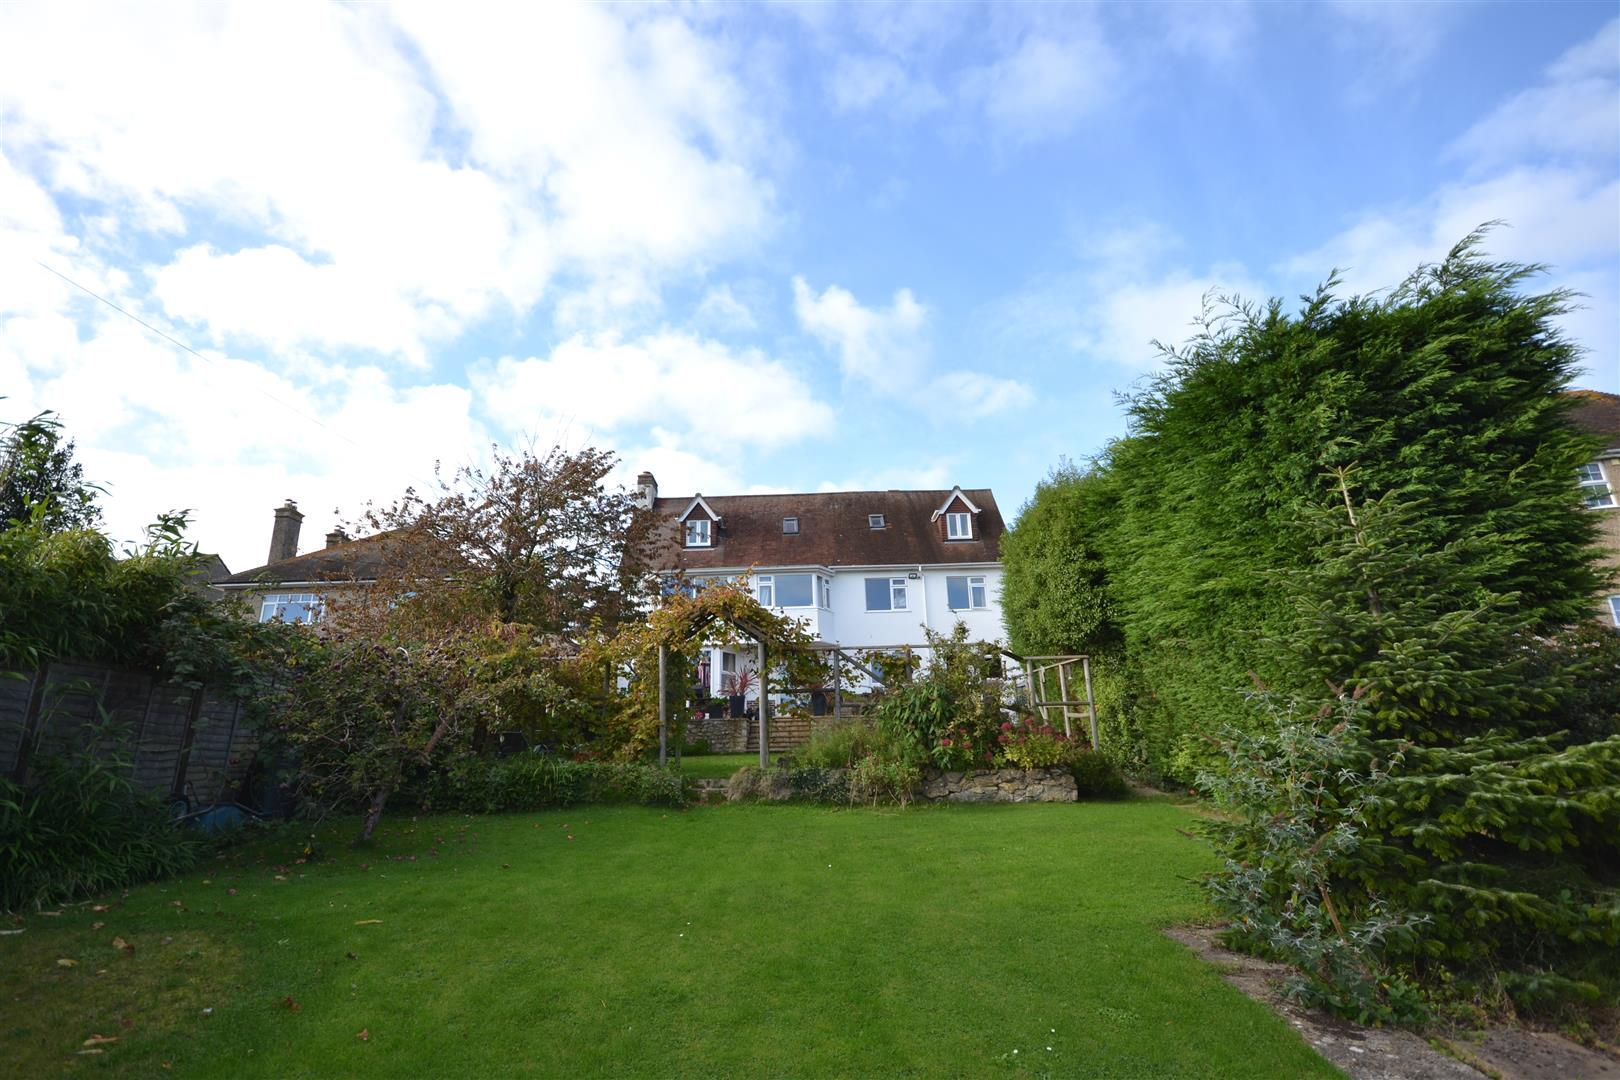 6 Bedrooms Detached House for sale in St Andrews Road, Bridport